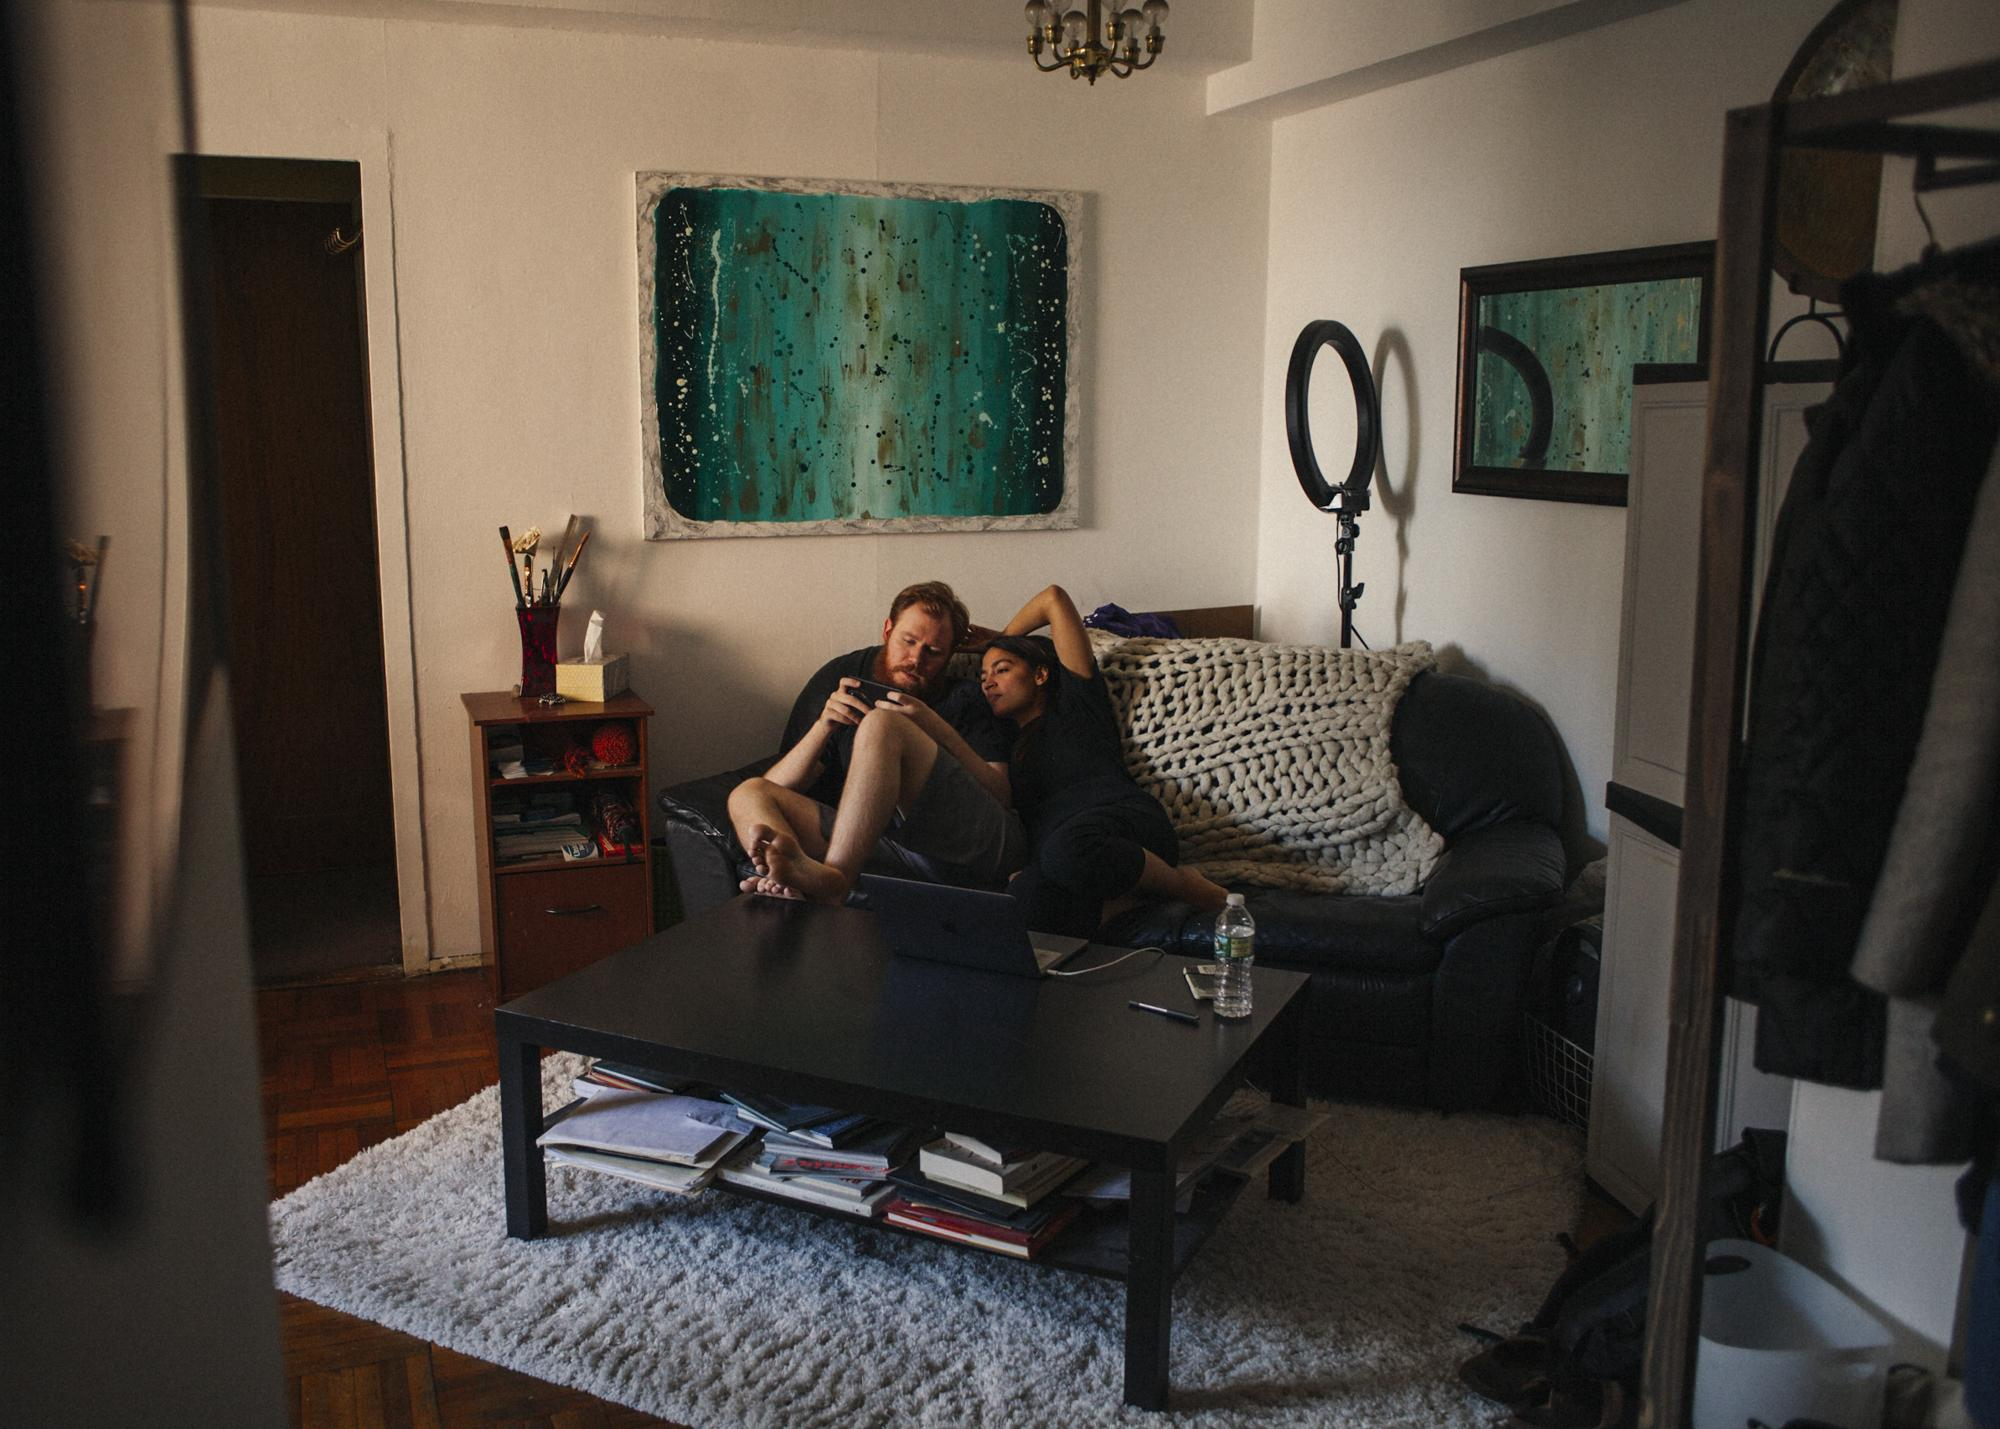 In a rare moment of downtime, Alexandria takes advantage of the opportunity to spend time with her boyfriend Riley Roberts at their Parkchester apartment, in The Bronx borough of New York City, April 8, 2018.